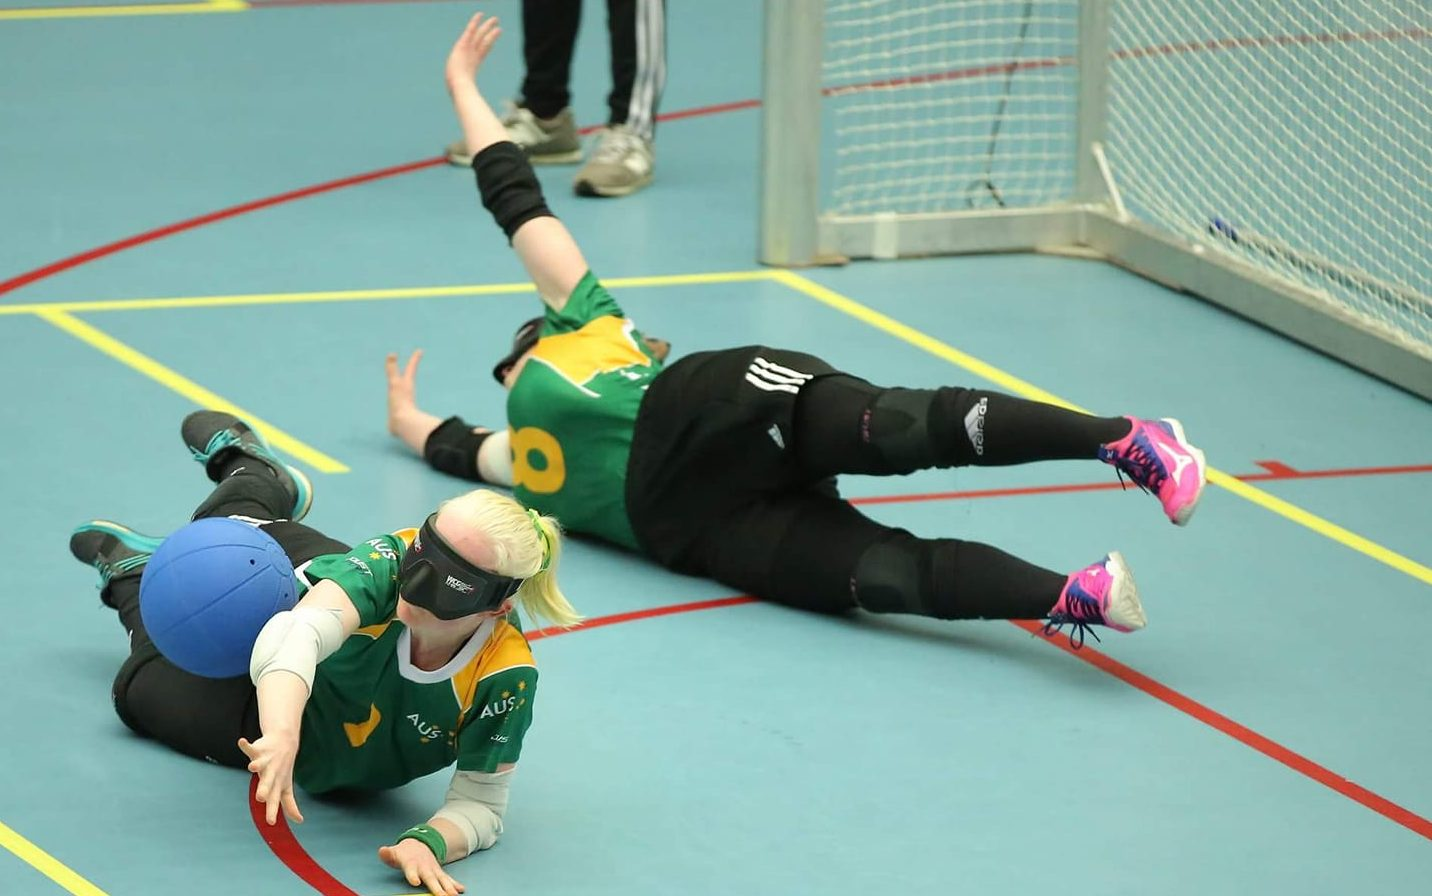 Australia bows out at Goalball World Championships